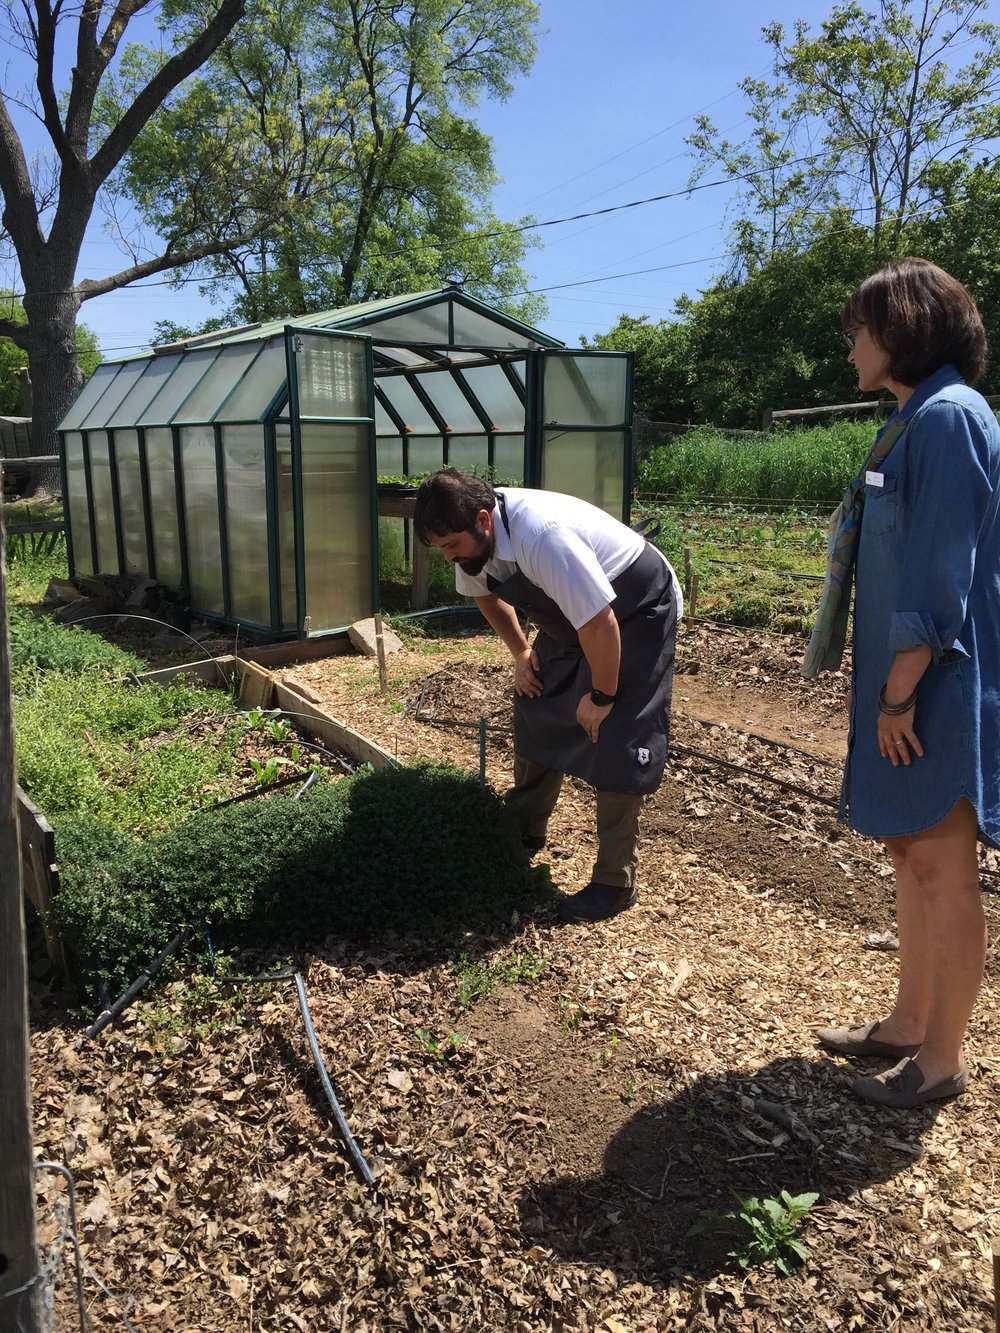 The chef checks out TNFP's kitchen garden at Woodmont.